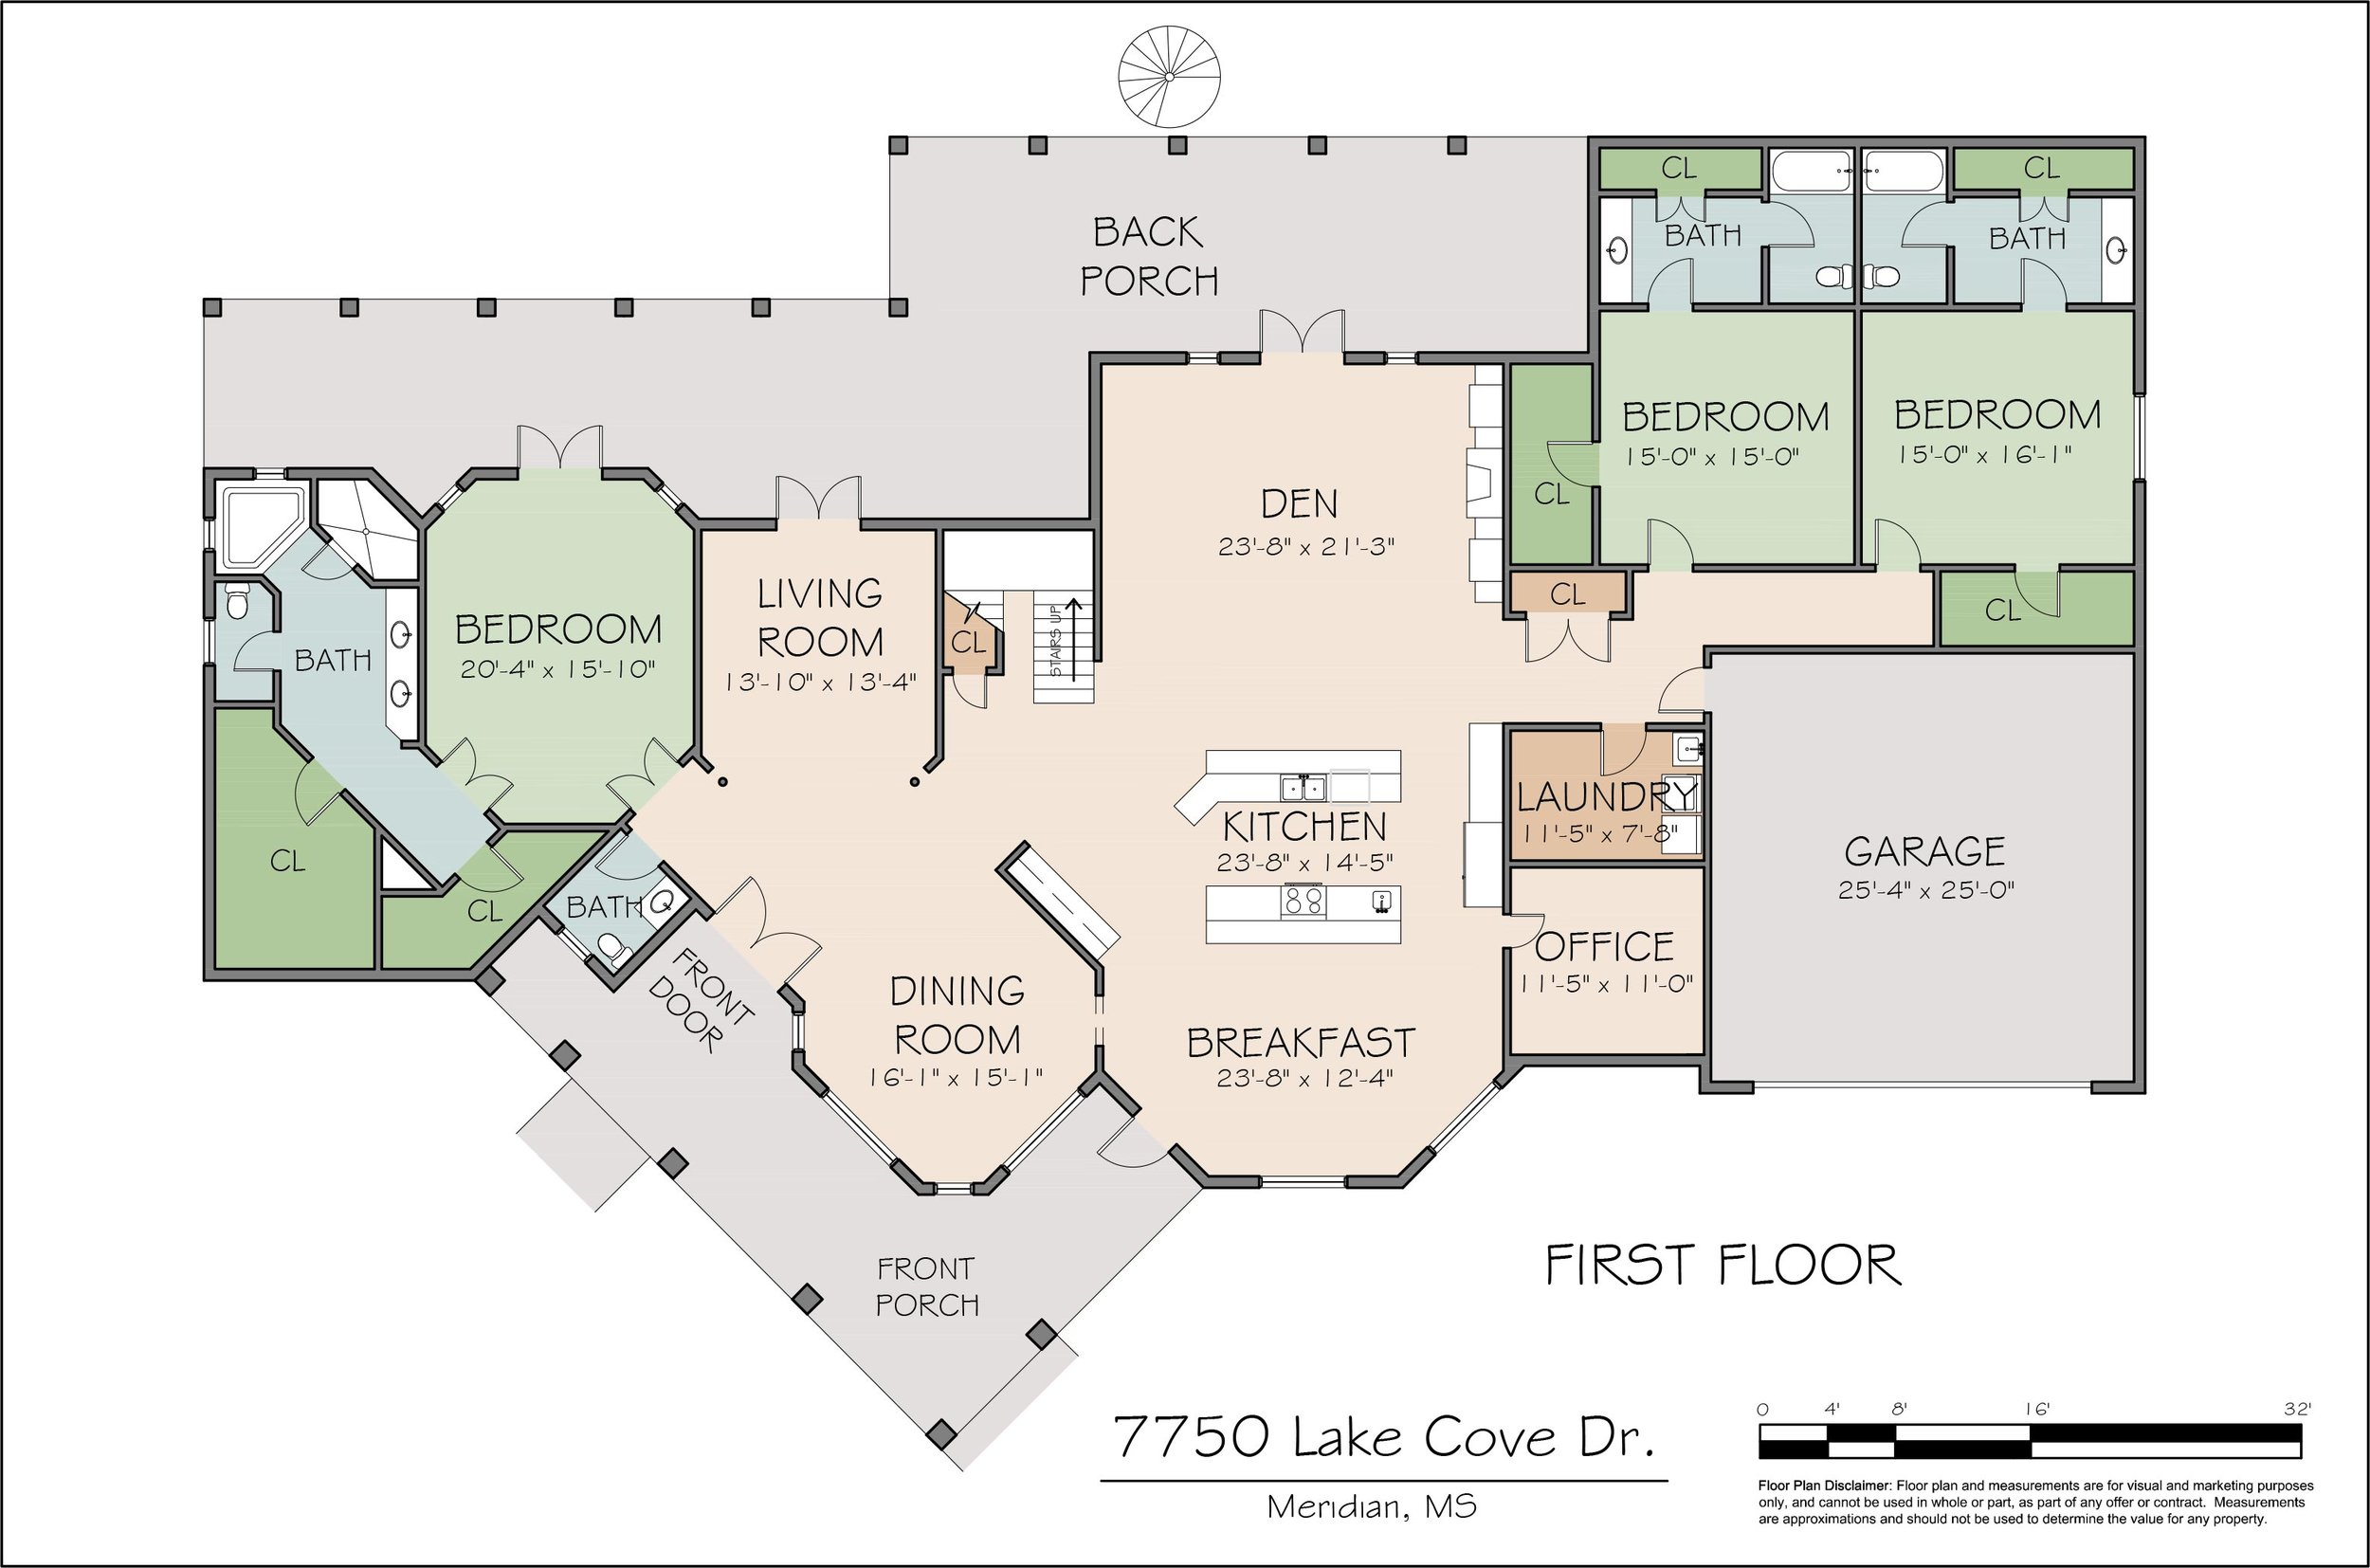 7750-Lake-Cove-Dr_First-Floor_1.jpg